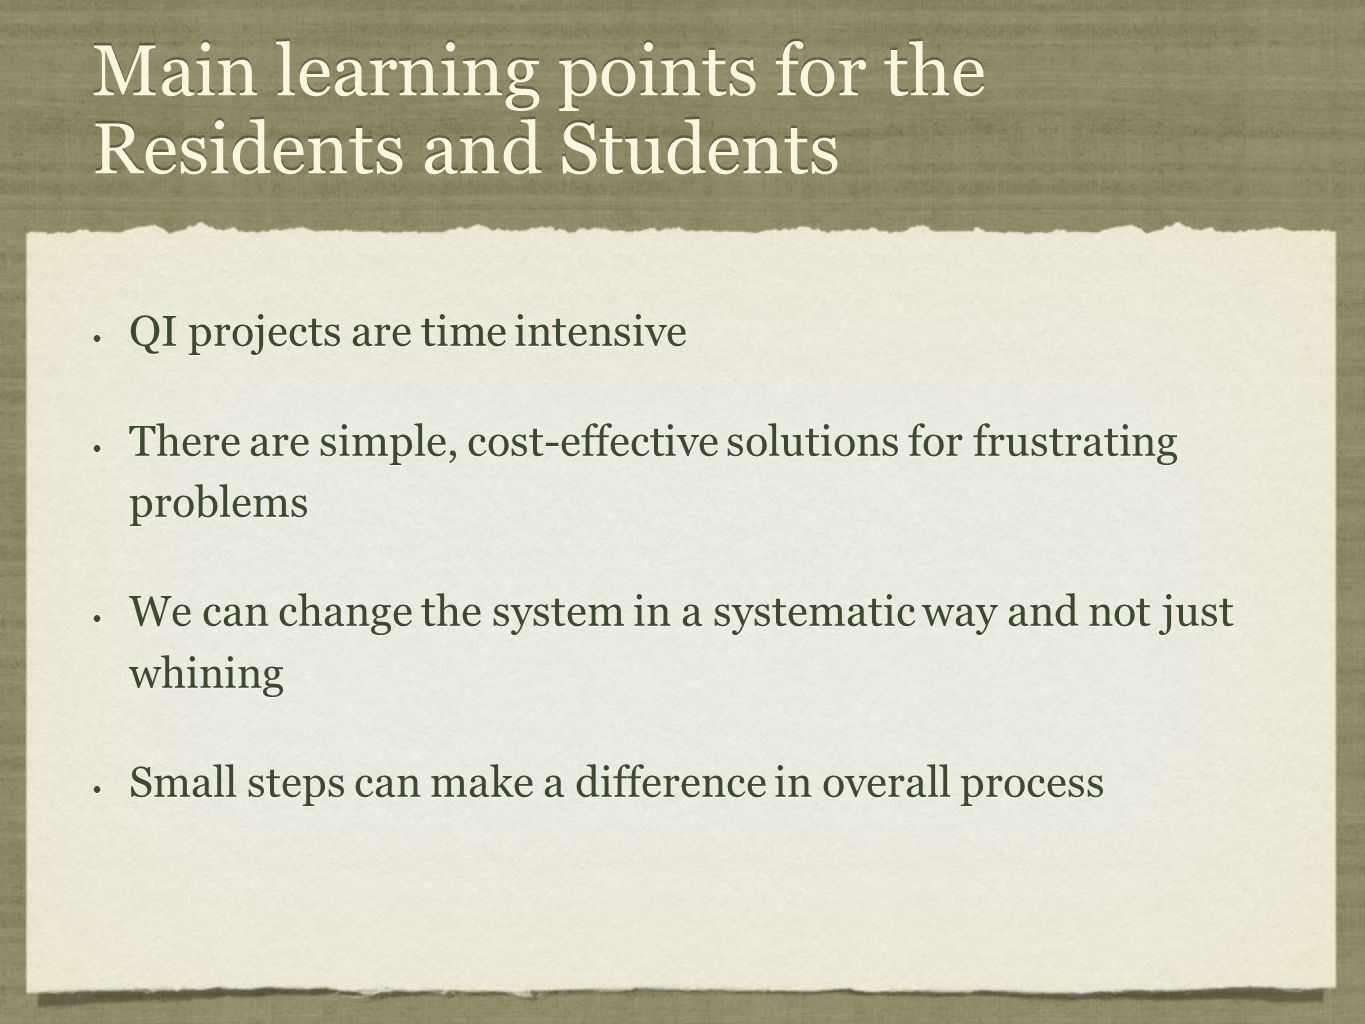 Main learning points for the Residents and Students